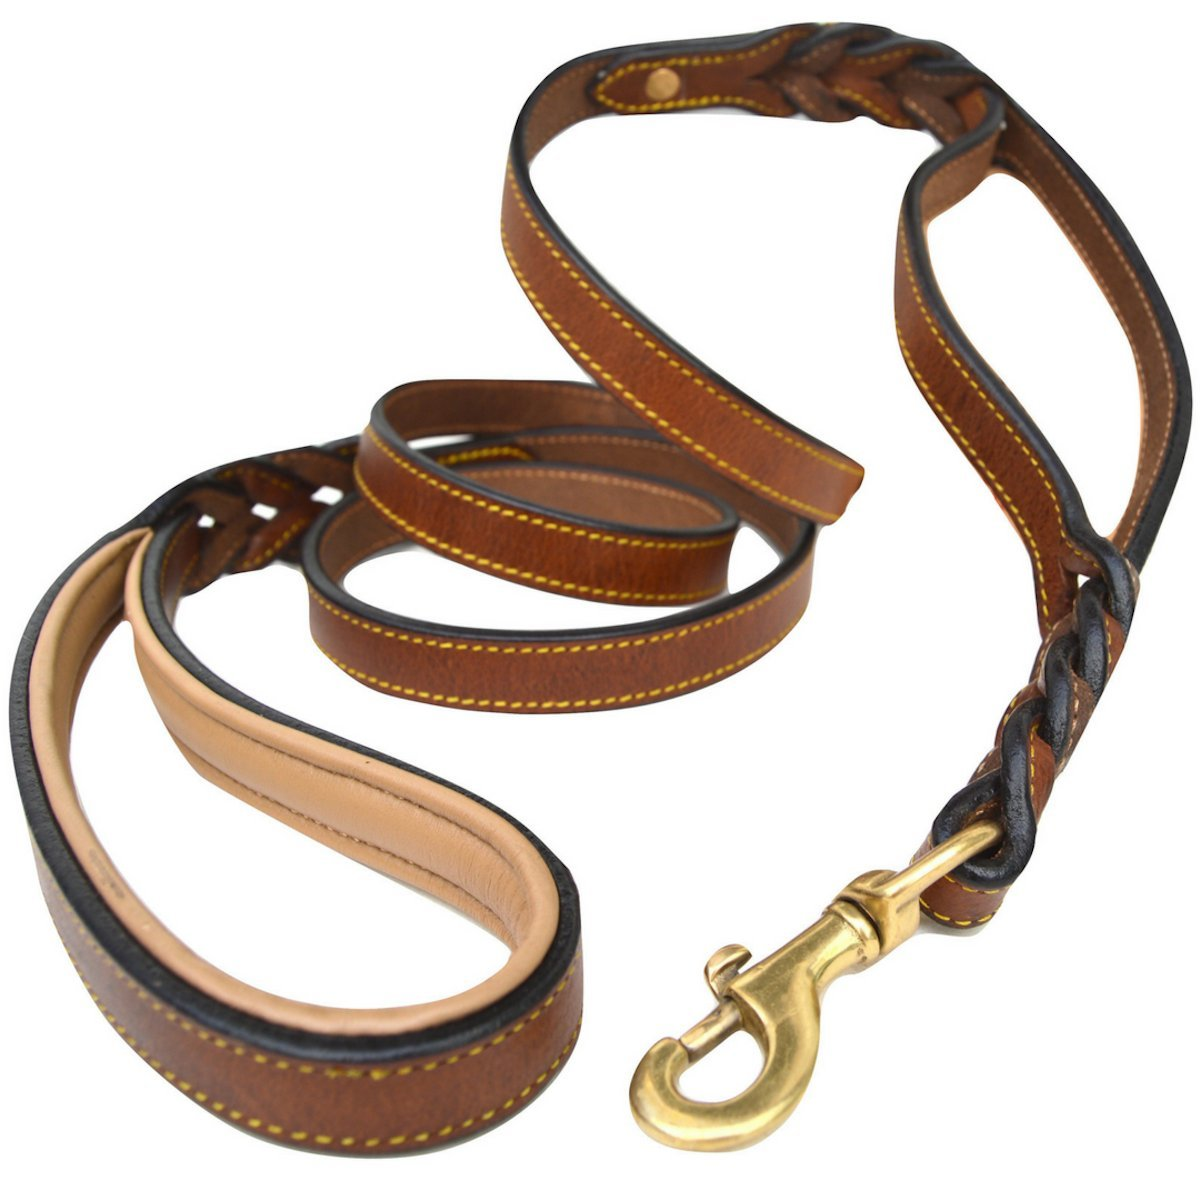 Soft Touch Collars, 6 Foot Braided Leather Dog Leash with Traffic Handle, Two Handles for Training and Safety, Double your Control with 2 Locations, Lead for Large and Medium Dogs Brown 6ft x 3/4 Inch by Soft Touch Collars